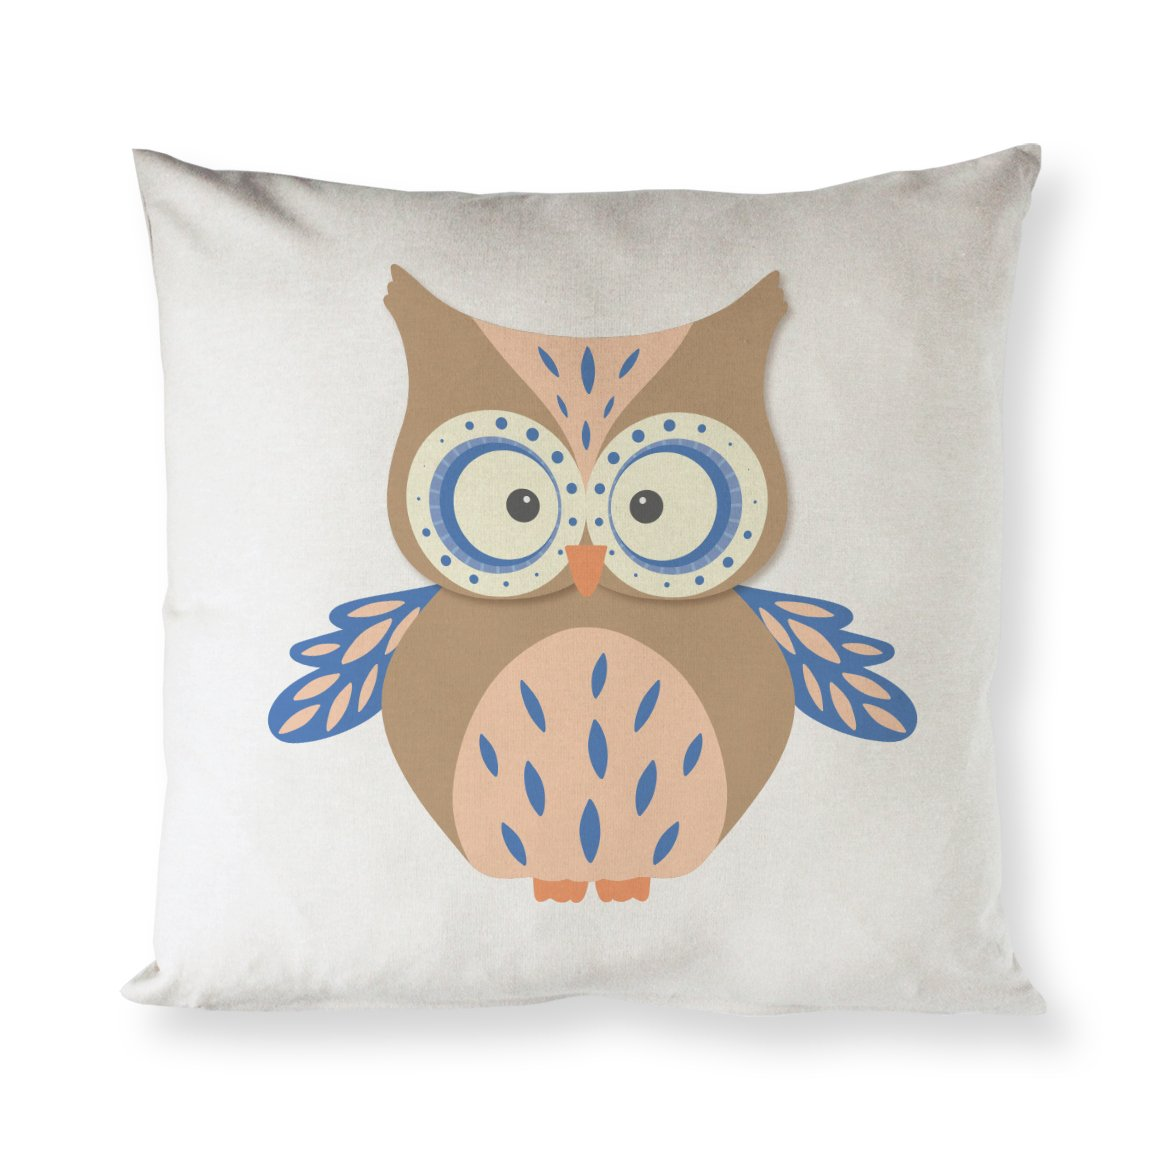 The Cotton Canvas Co Owl Home Decor Pillow Cover Pillowcase Cushion Cover And Decorative Throw Pillow Cover For Nursery And Kid S Room Natural Color Not White Walmart Com Walmart Com